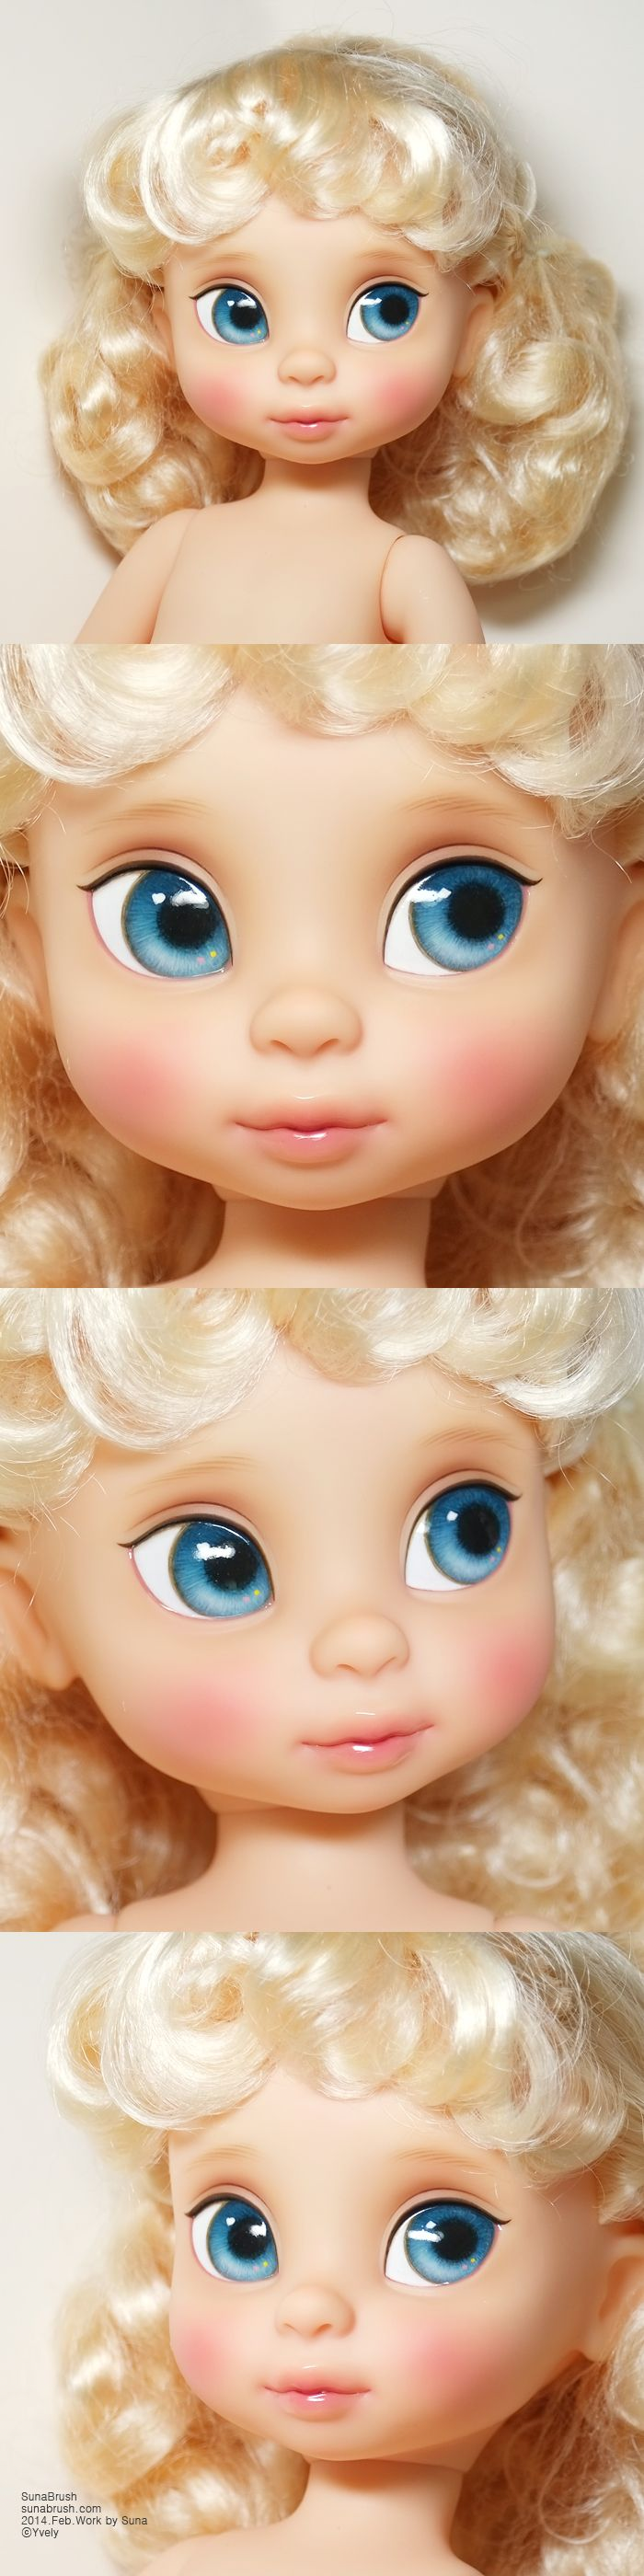 Disney Animators Collection Dolls - Cinderella by Yvely.deviantart.com on @DeviantArt